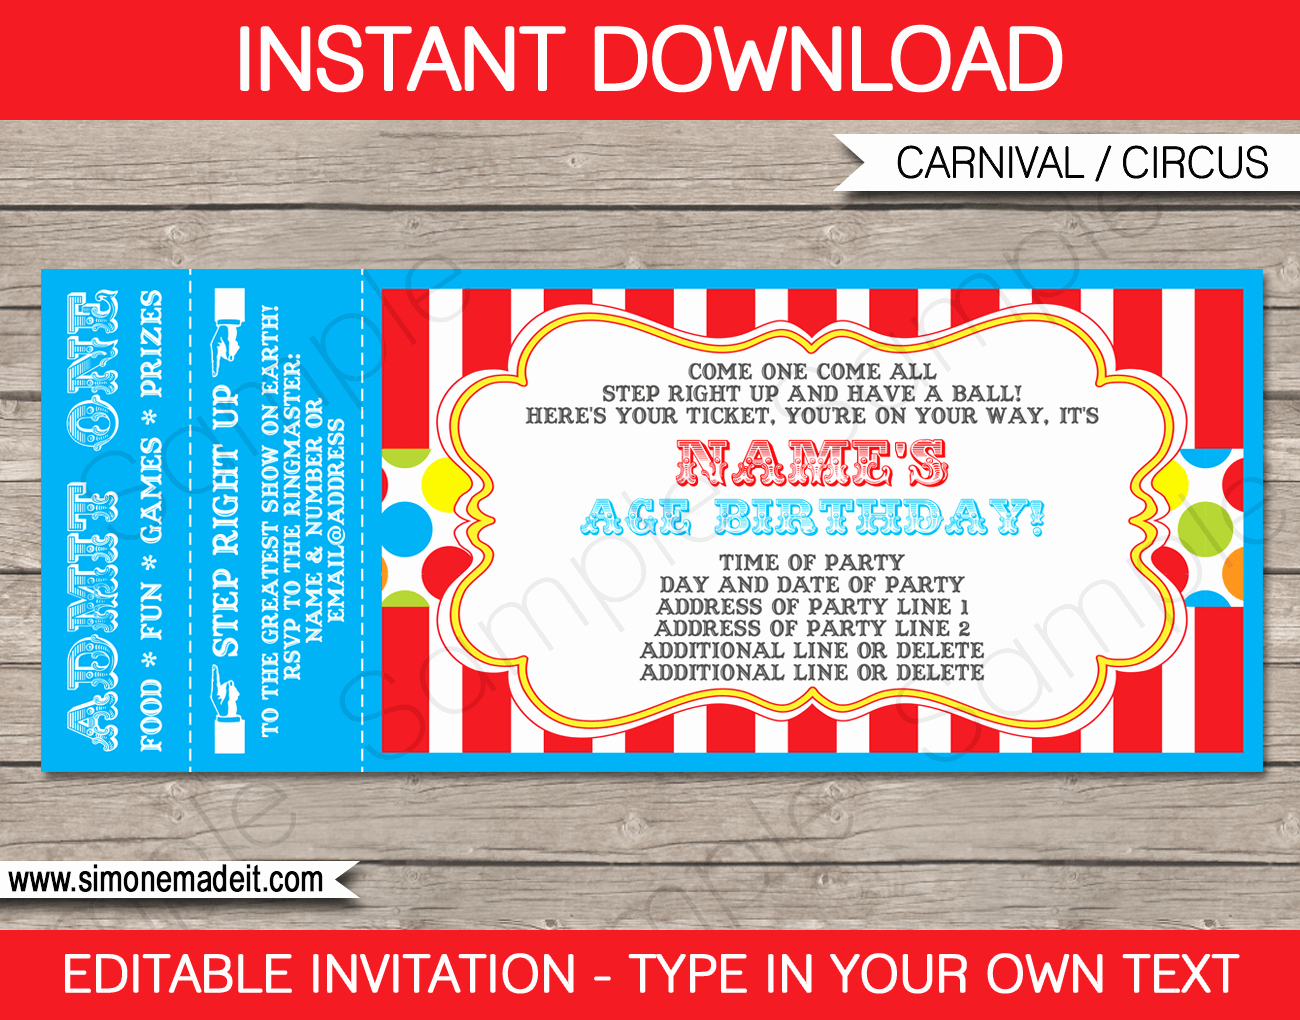 Carnival Invitation Template Free Lovely Carnival Party Ticket Invitation Template